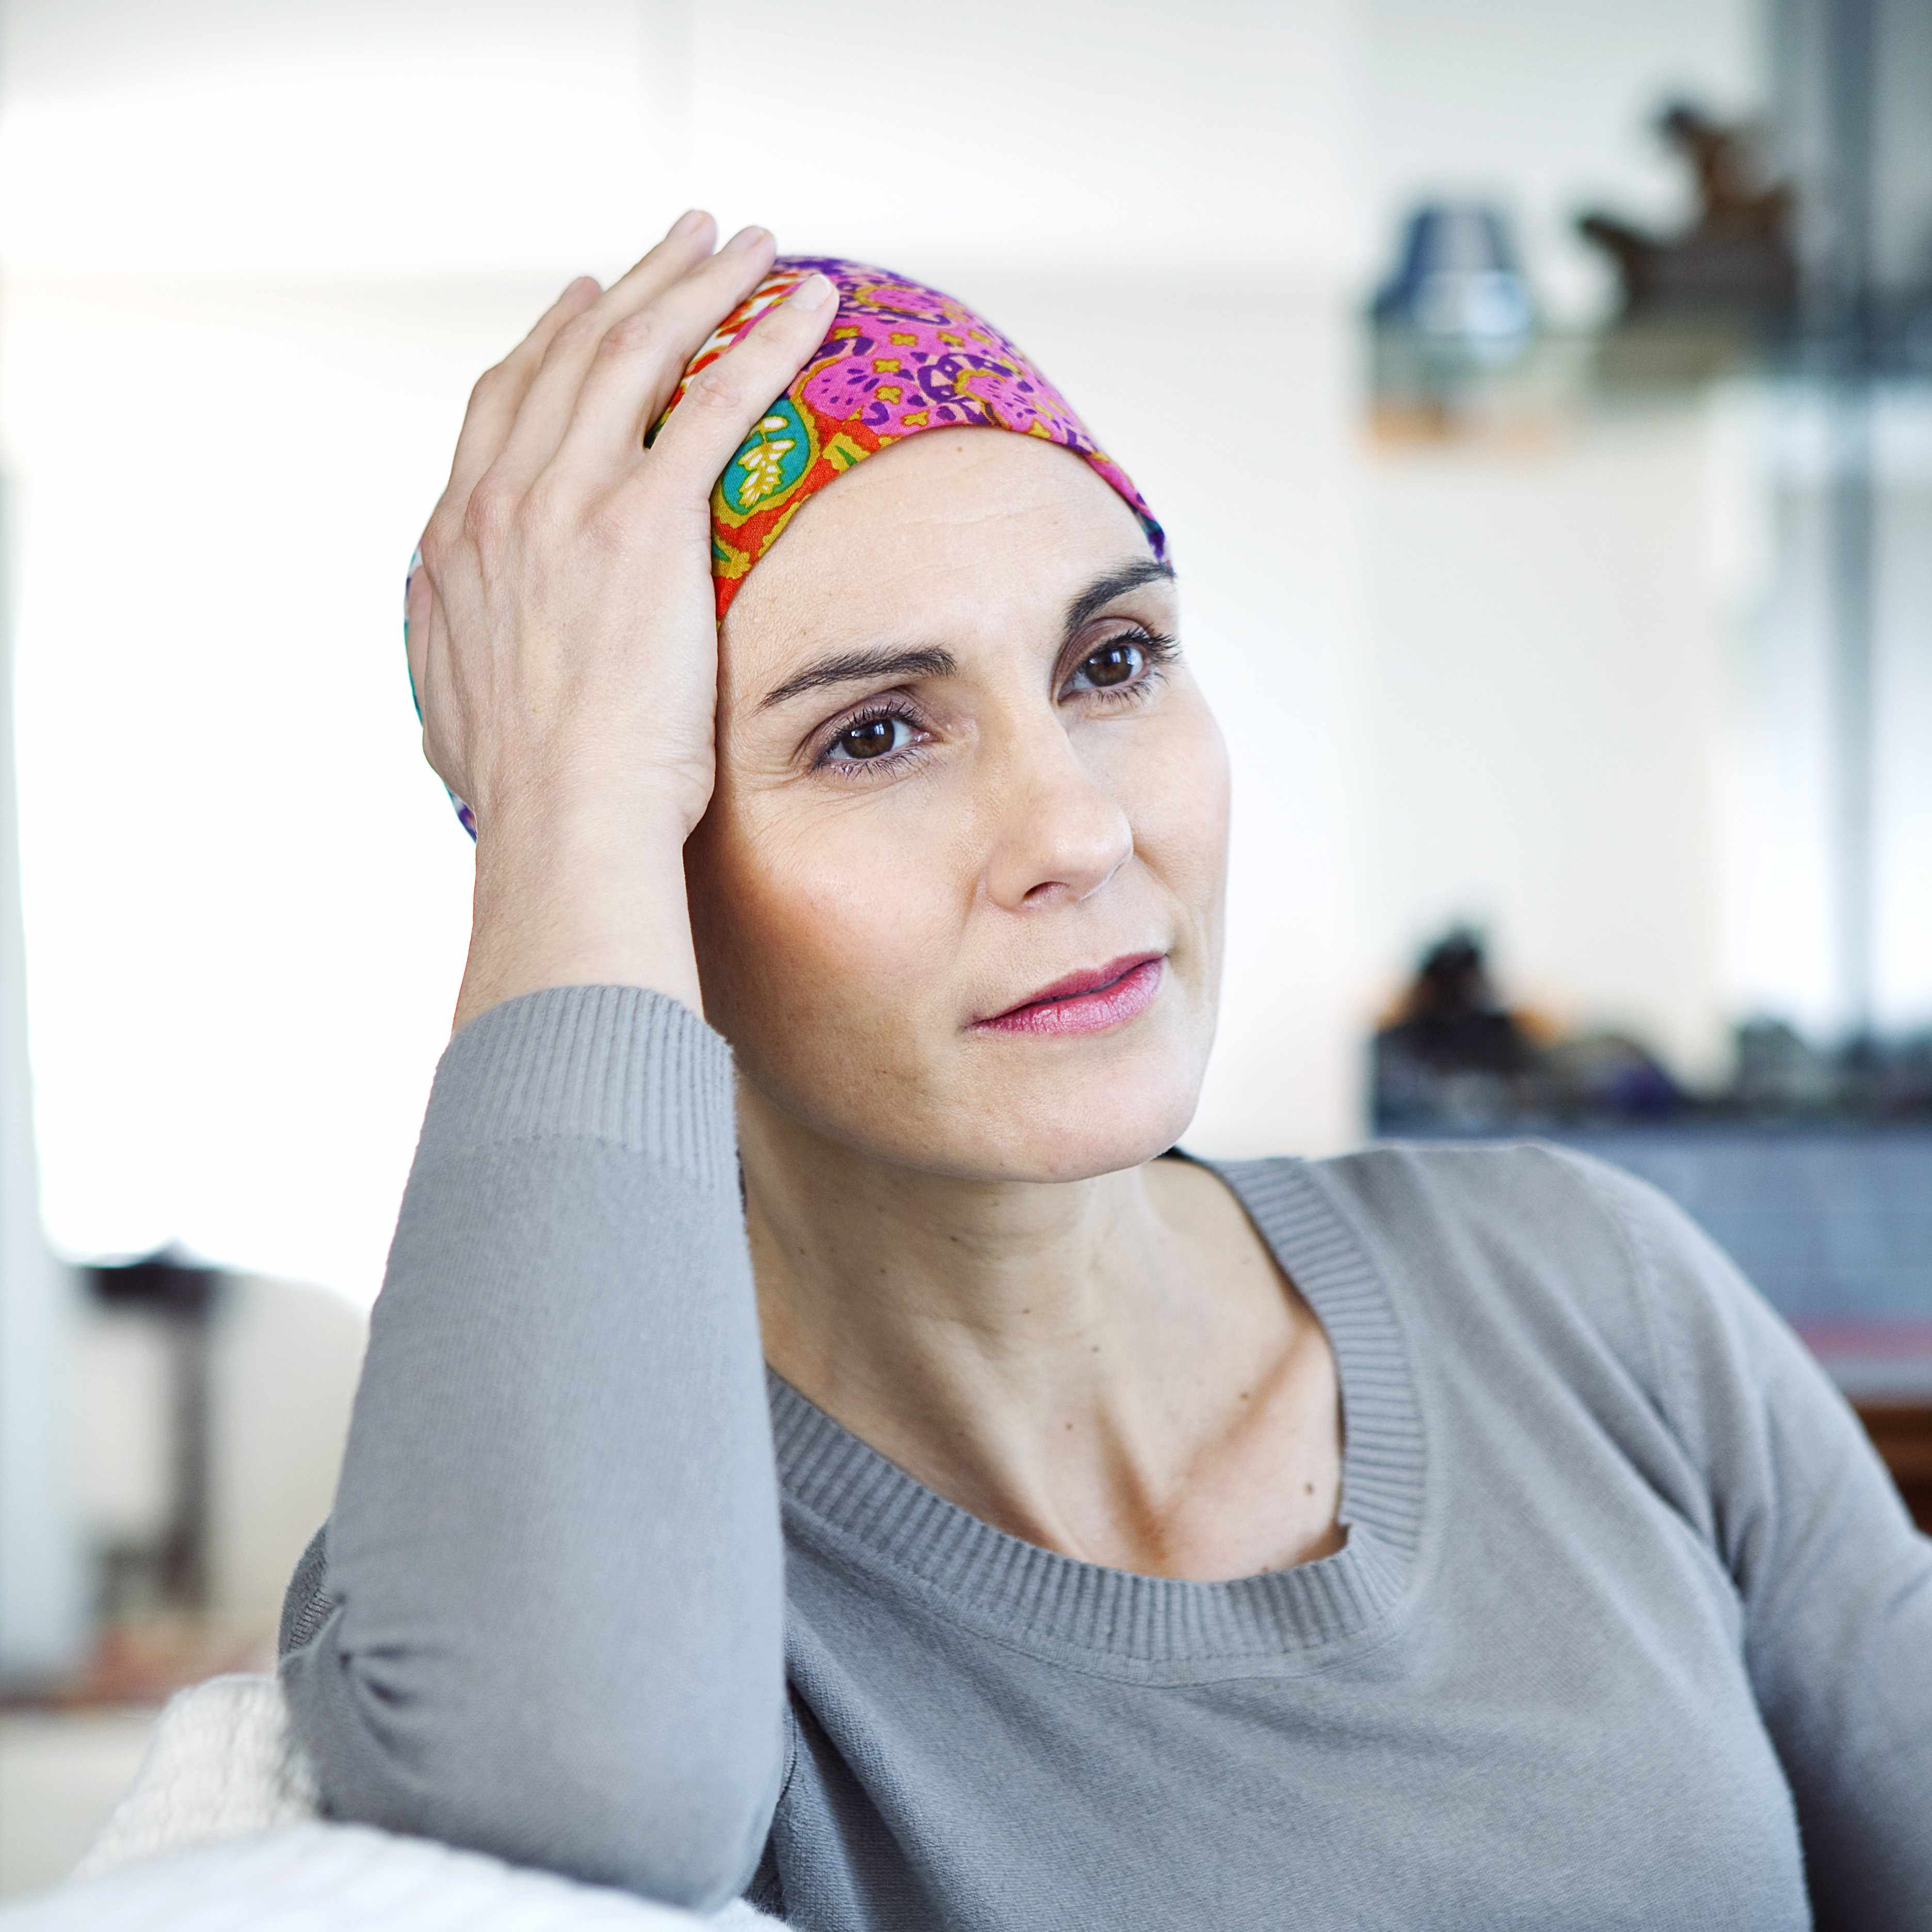 a close-up of a woman in a brightly colored headscarf, looking off into the distance